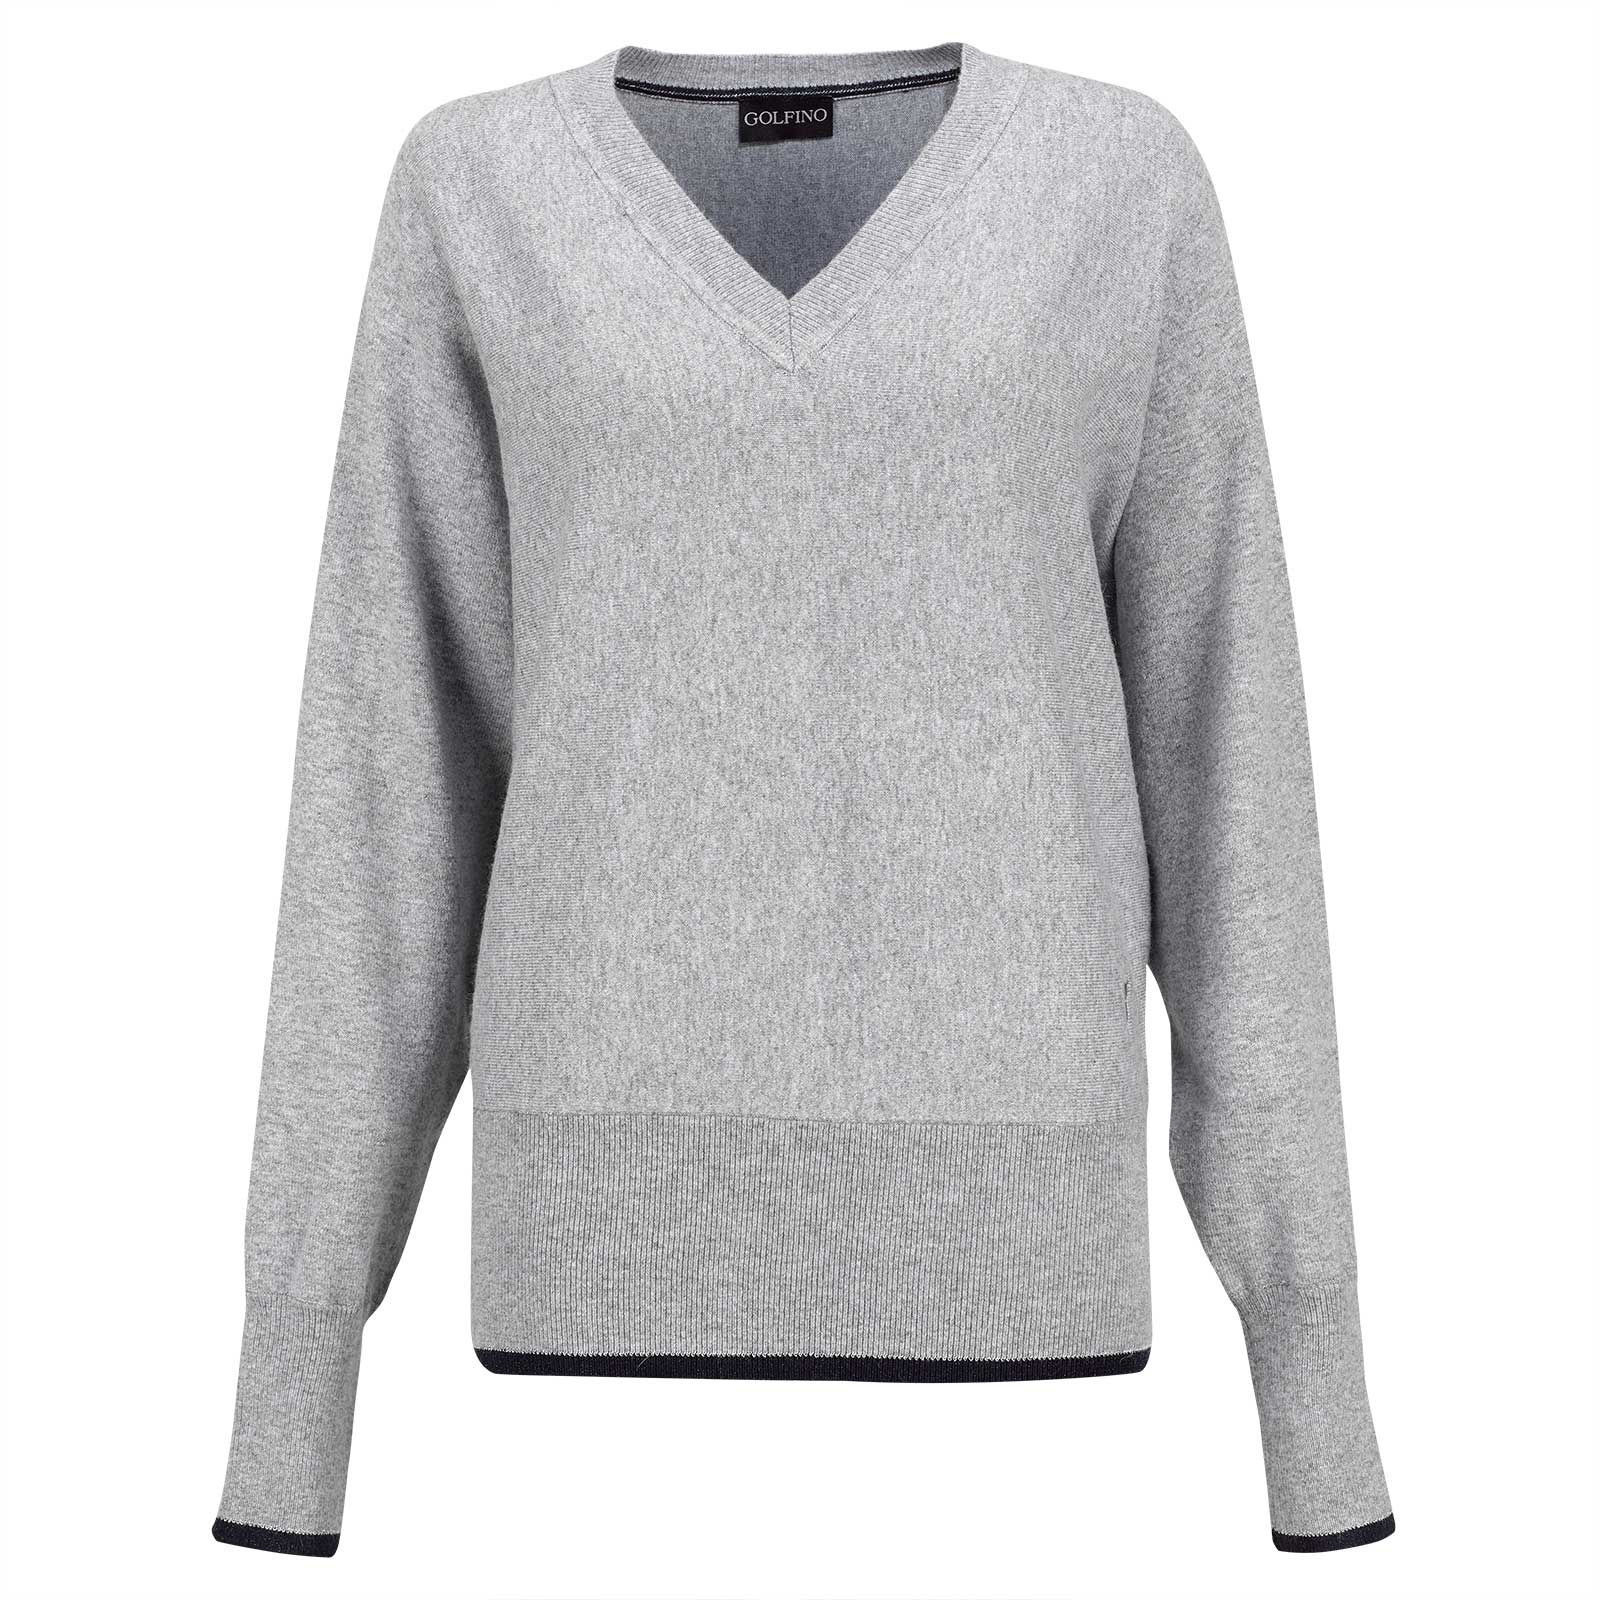 Ladies' Cold Protection v-neck sweater made from soft angora blend